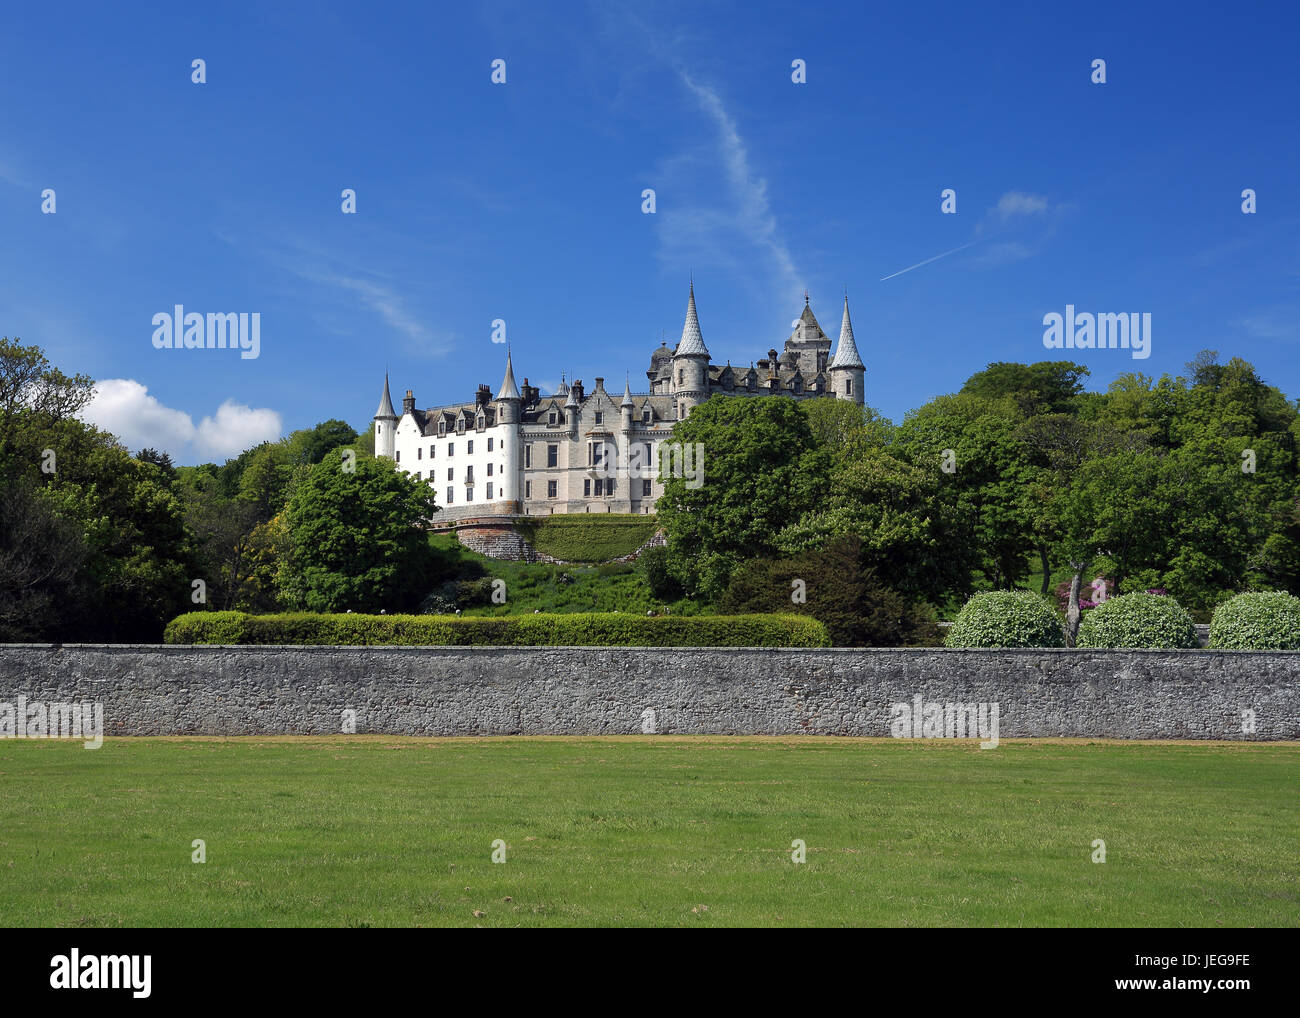 Dunrobin Castle, Golspie, Scotland on a sunny day with blue skies - Stock Image